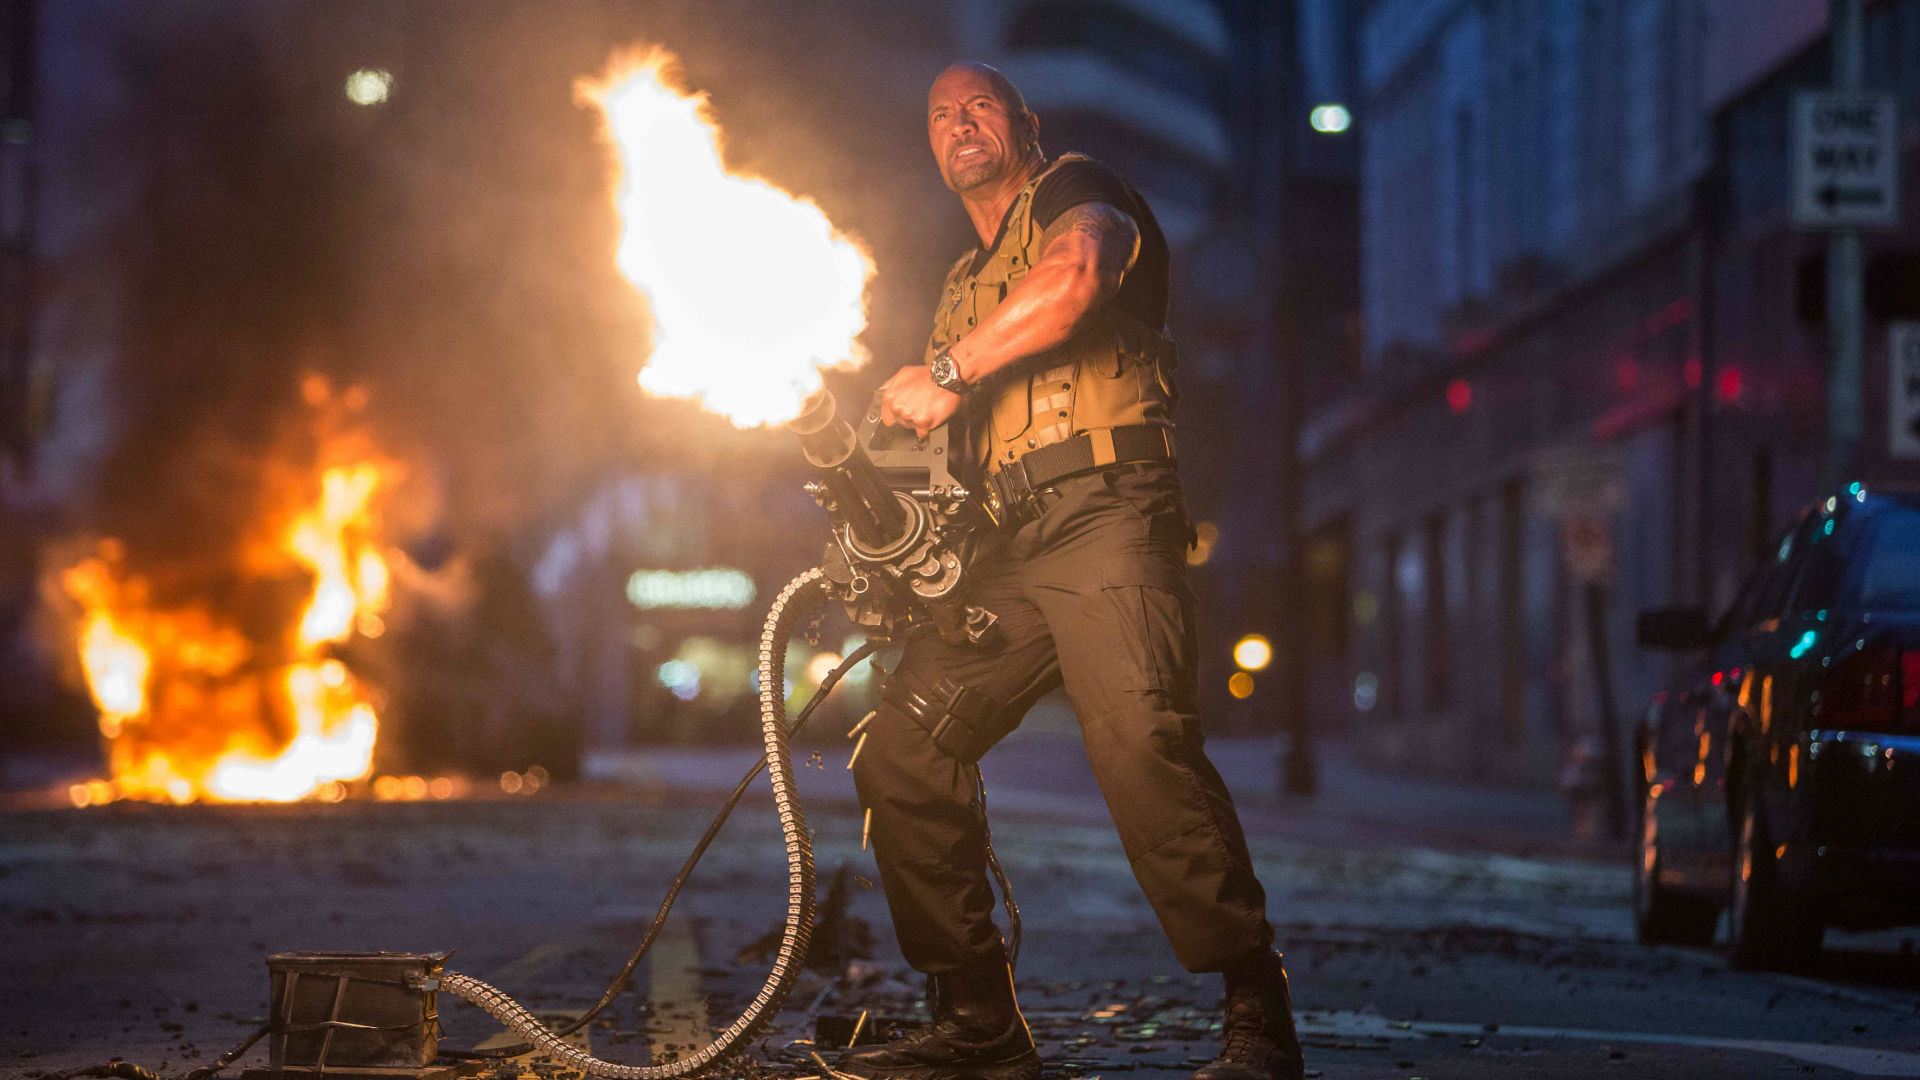 Dwayne The Rock Johnson in Fast & Furious 7